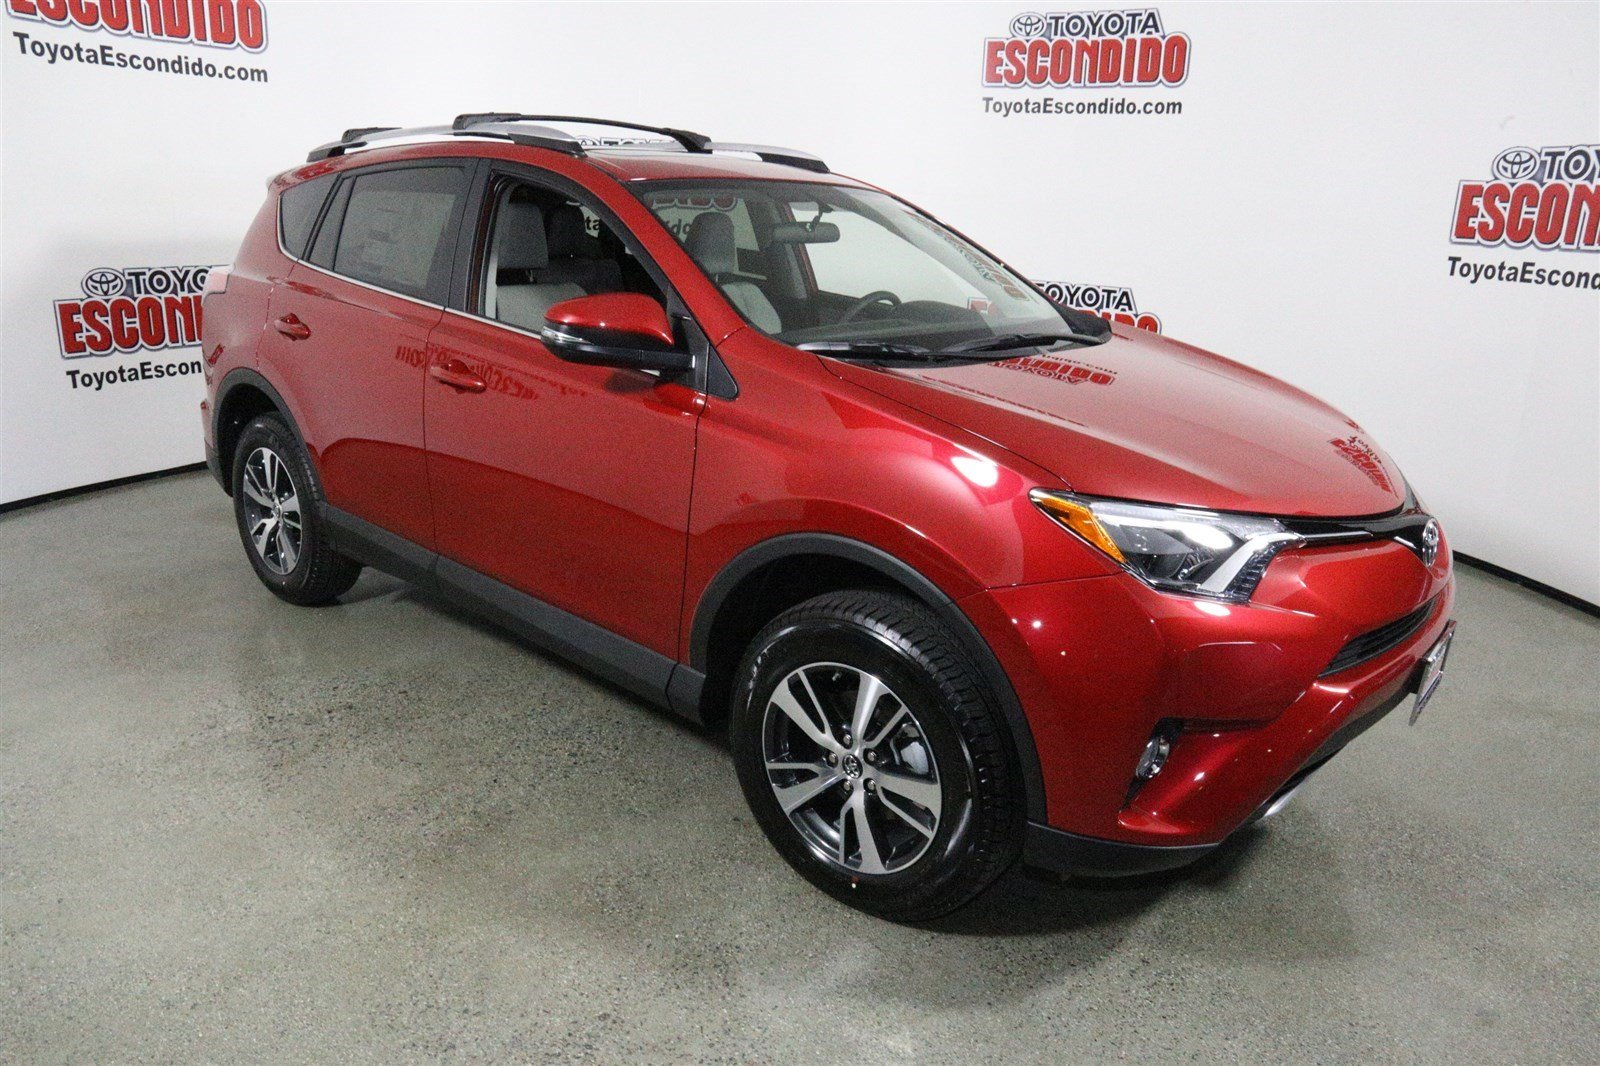 new 2017 toyota rav4 xle sport utility in escondido hj114156 toyota of escondido. Black Bedroom Furniture Sets. Home Design Ideas